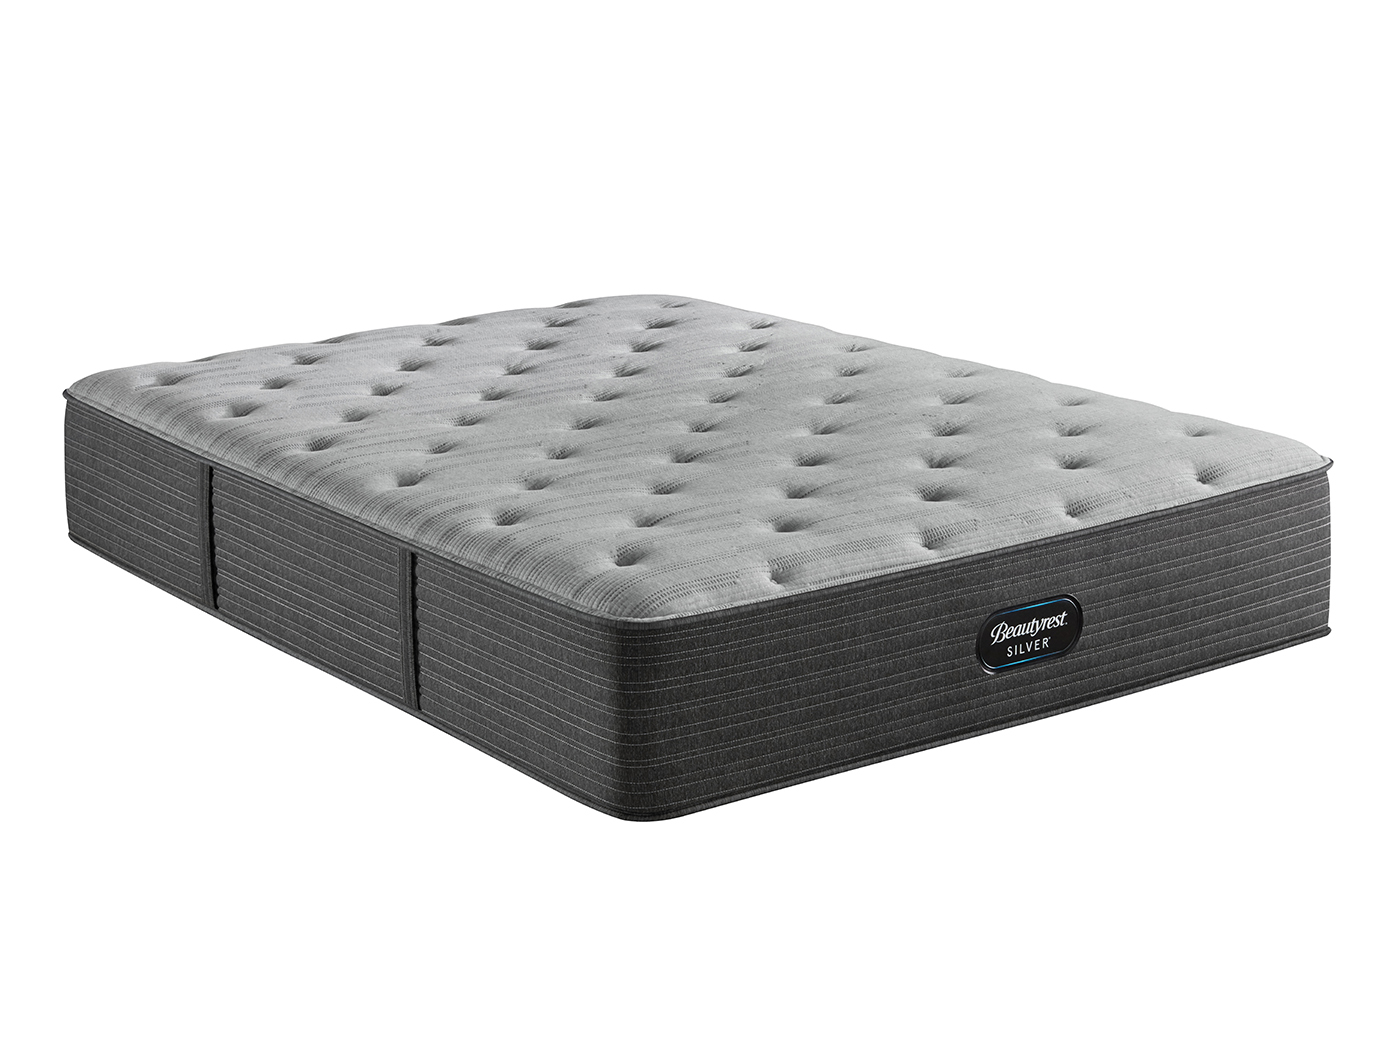 Beautyrest Silver BRS900C-RS Plush Twin Mattress